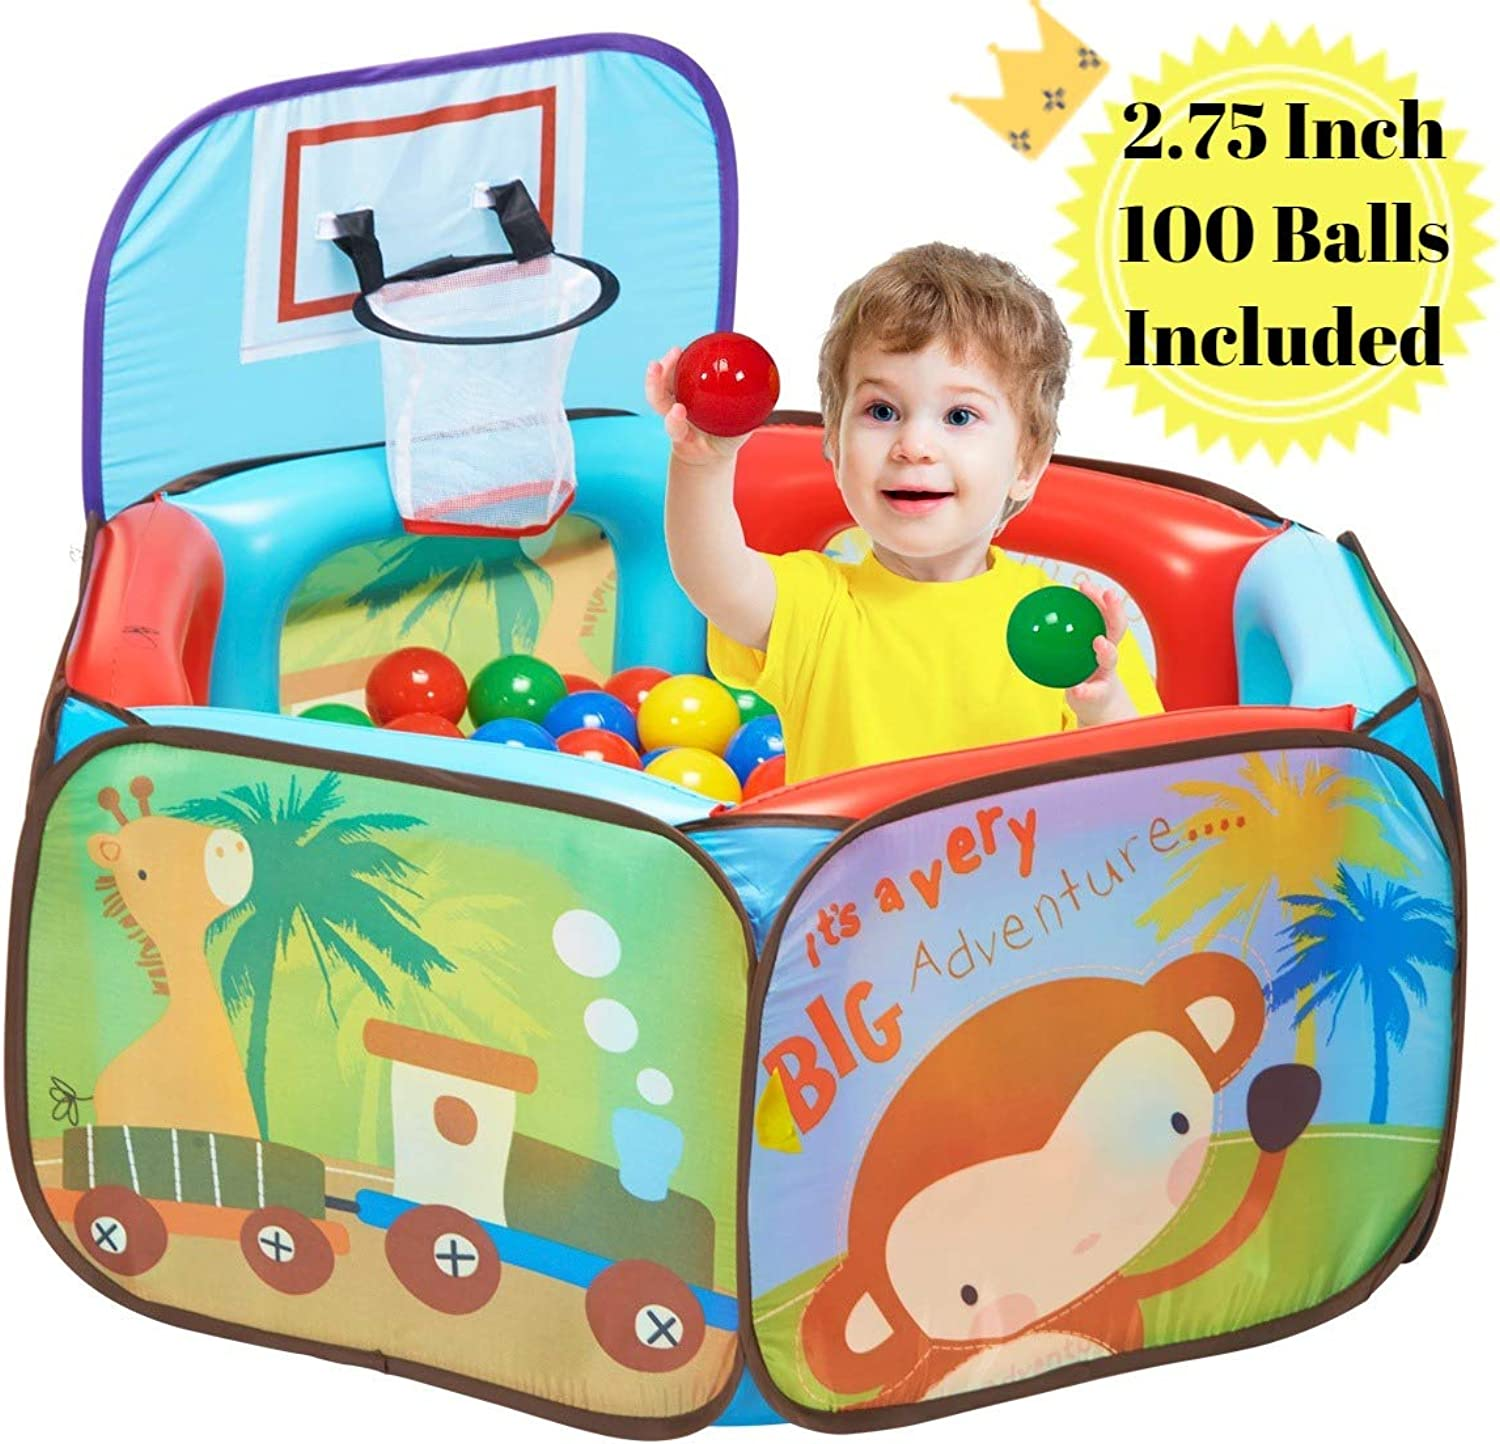 Lihsen 2 in 1 Ball Pit Play Tent, Pool Playpen with Basketball Hoop & Air Cushion Fence on The Inside & 100pcs 2.75  Soft Plastic Balls Included, Easy to Set Up